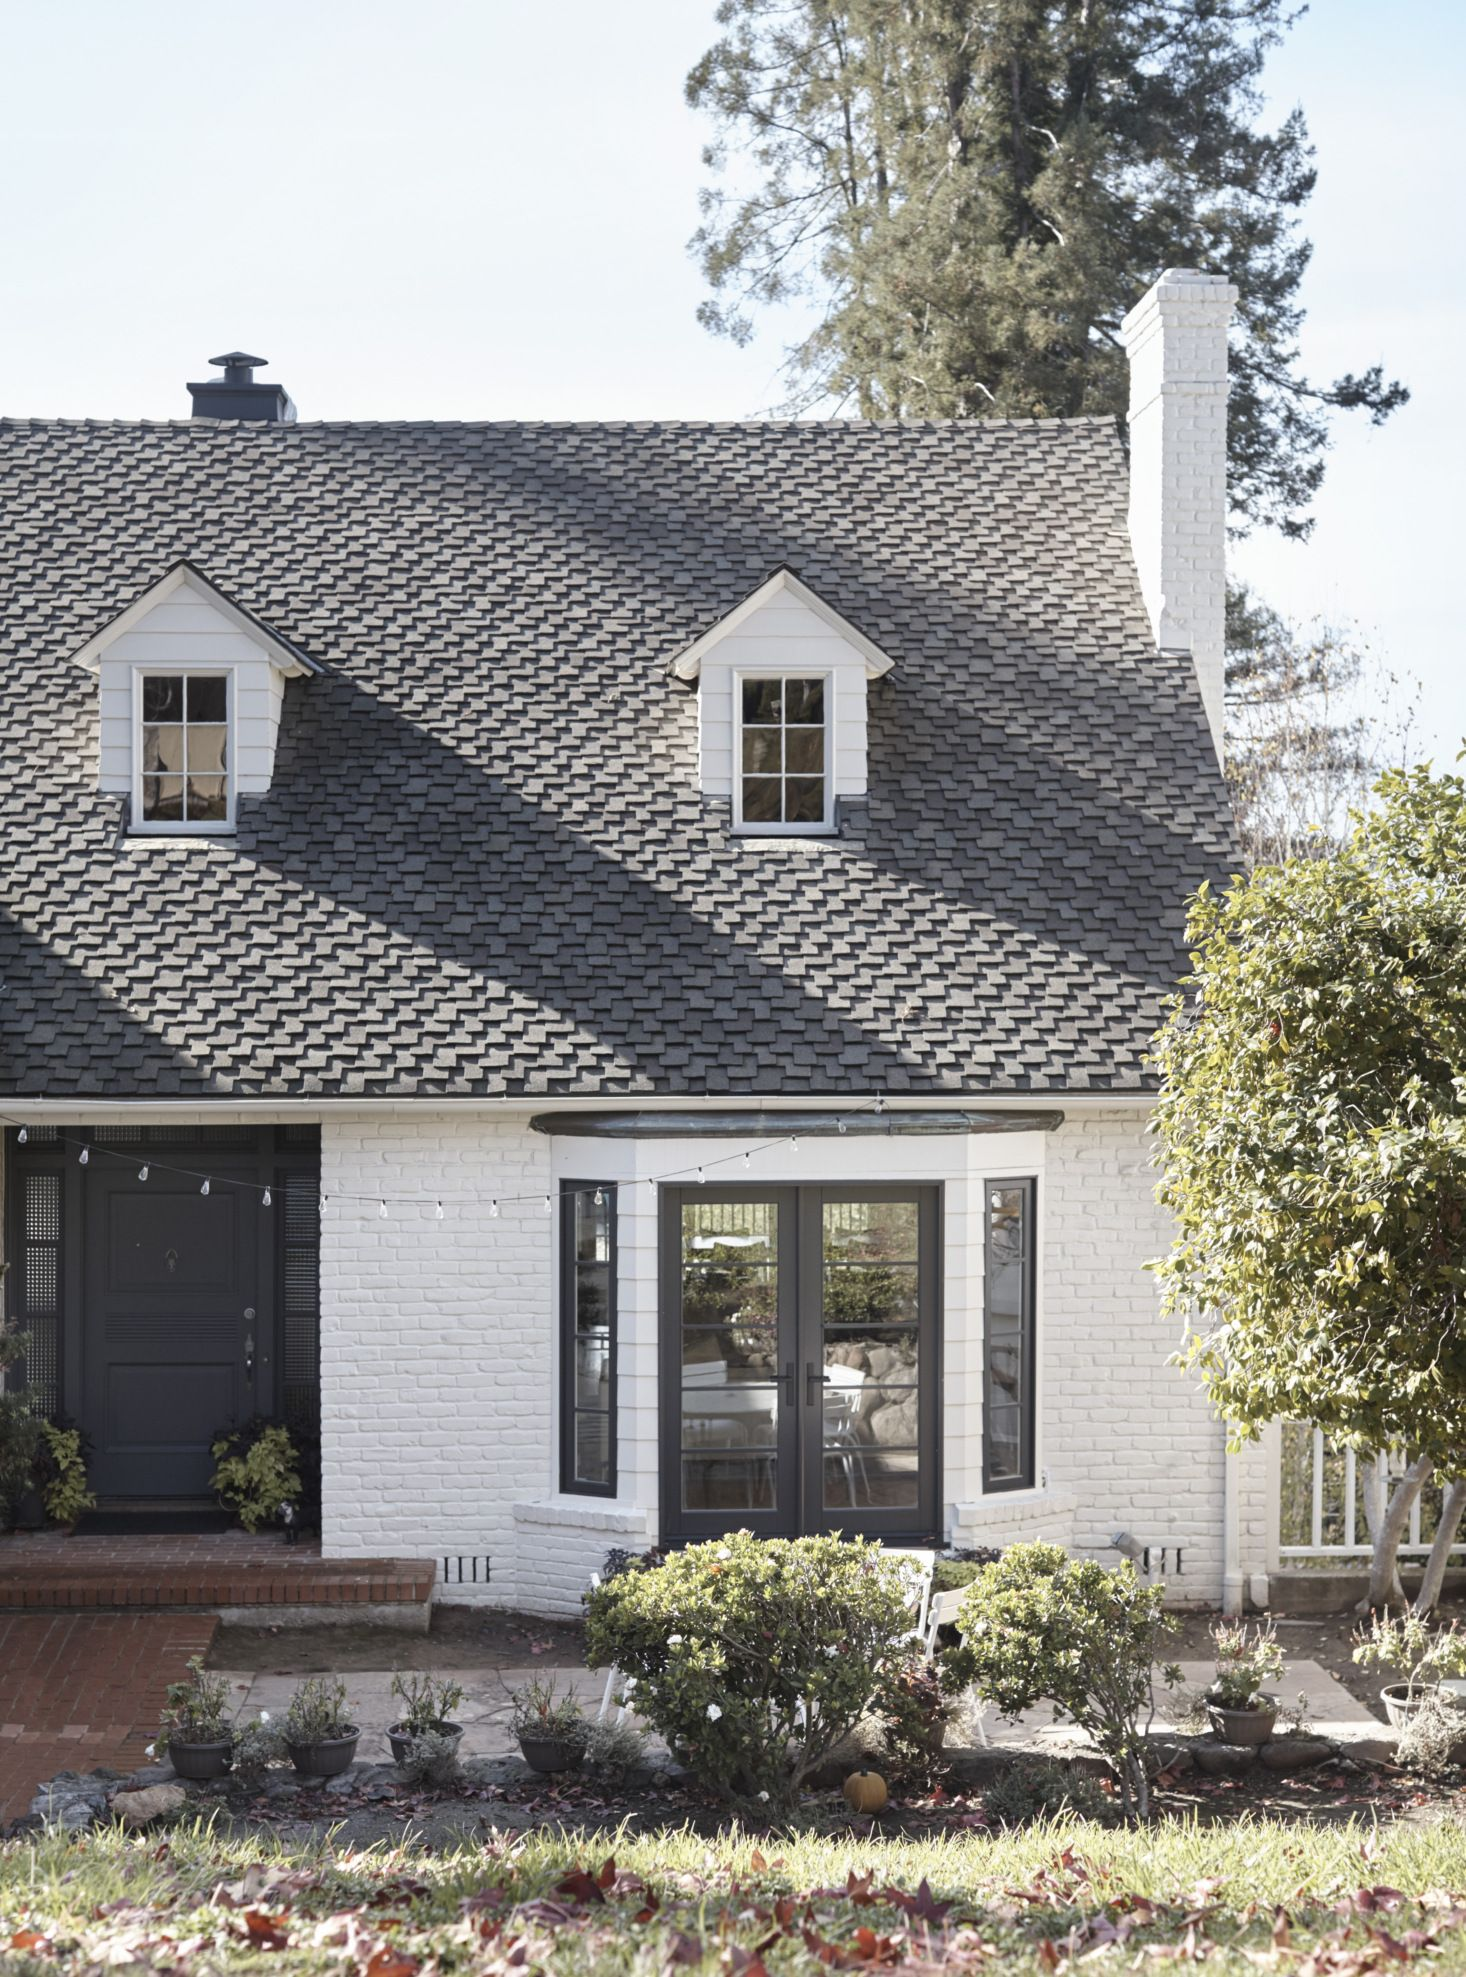 Suburban Staid No More A Stylish New California French Look For A Bay Area House House Paint Exterior Bay Window Exterior White Brick Houses